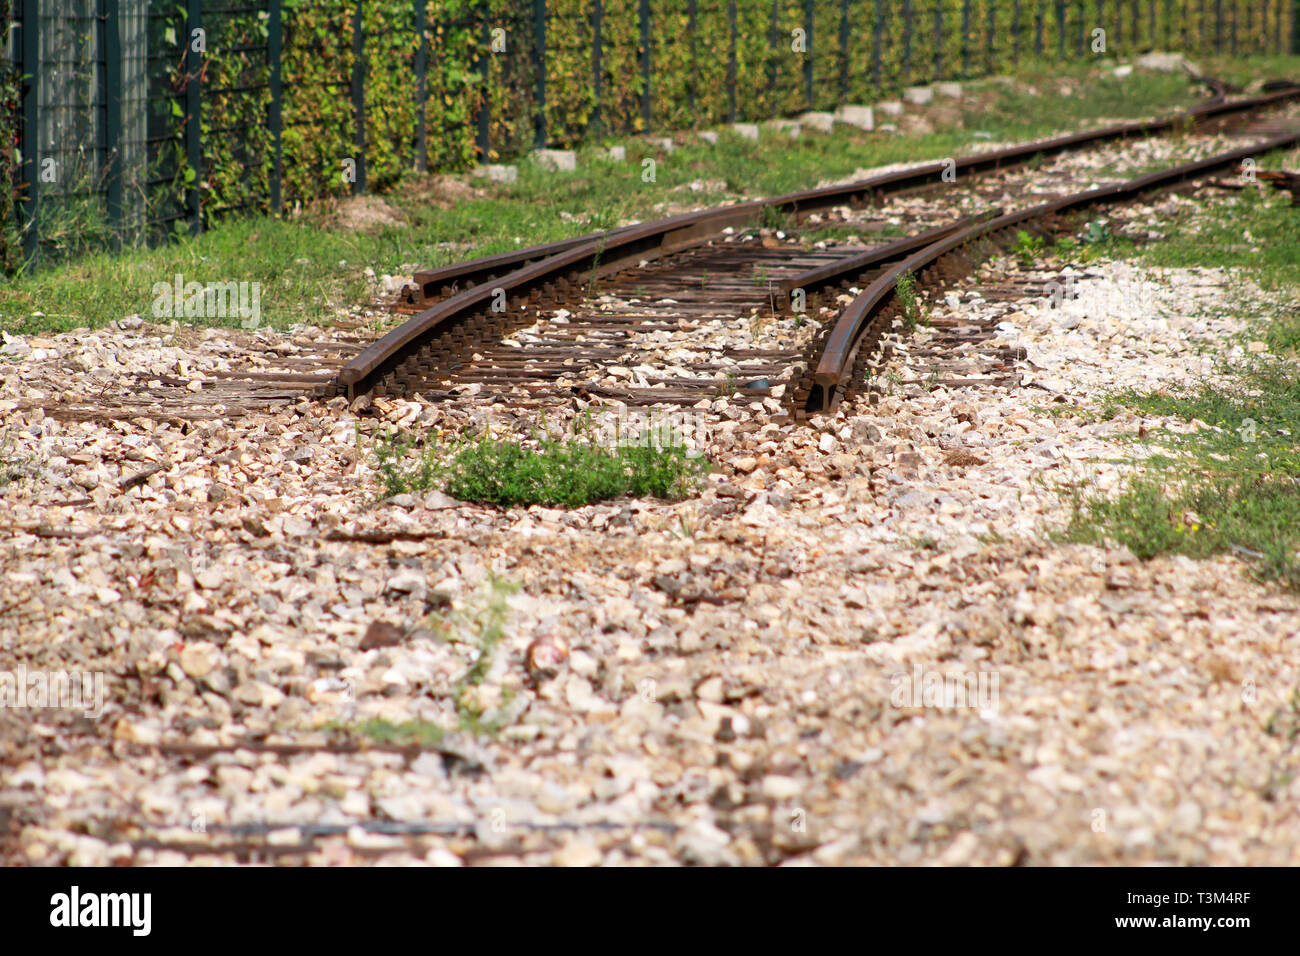 Old railway track in urban city. Vintage railroad. Close view of old railroad tracks with worn ties and gravel ballast in the summertime. - Stock Image